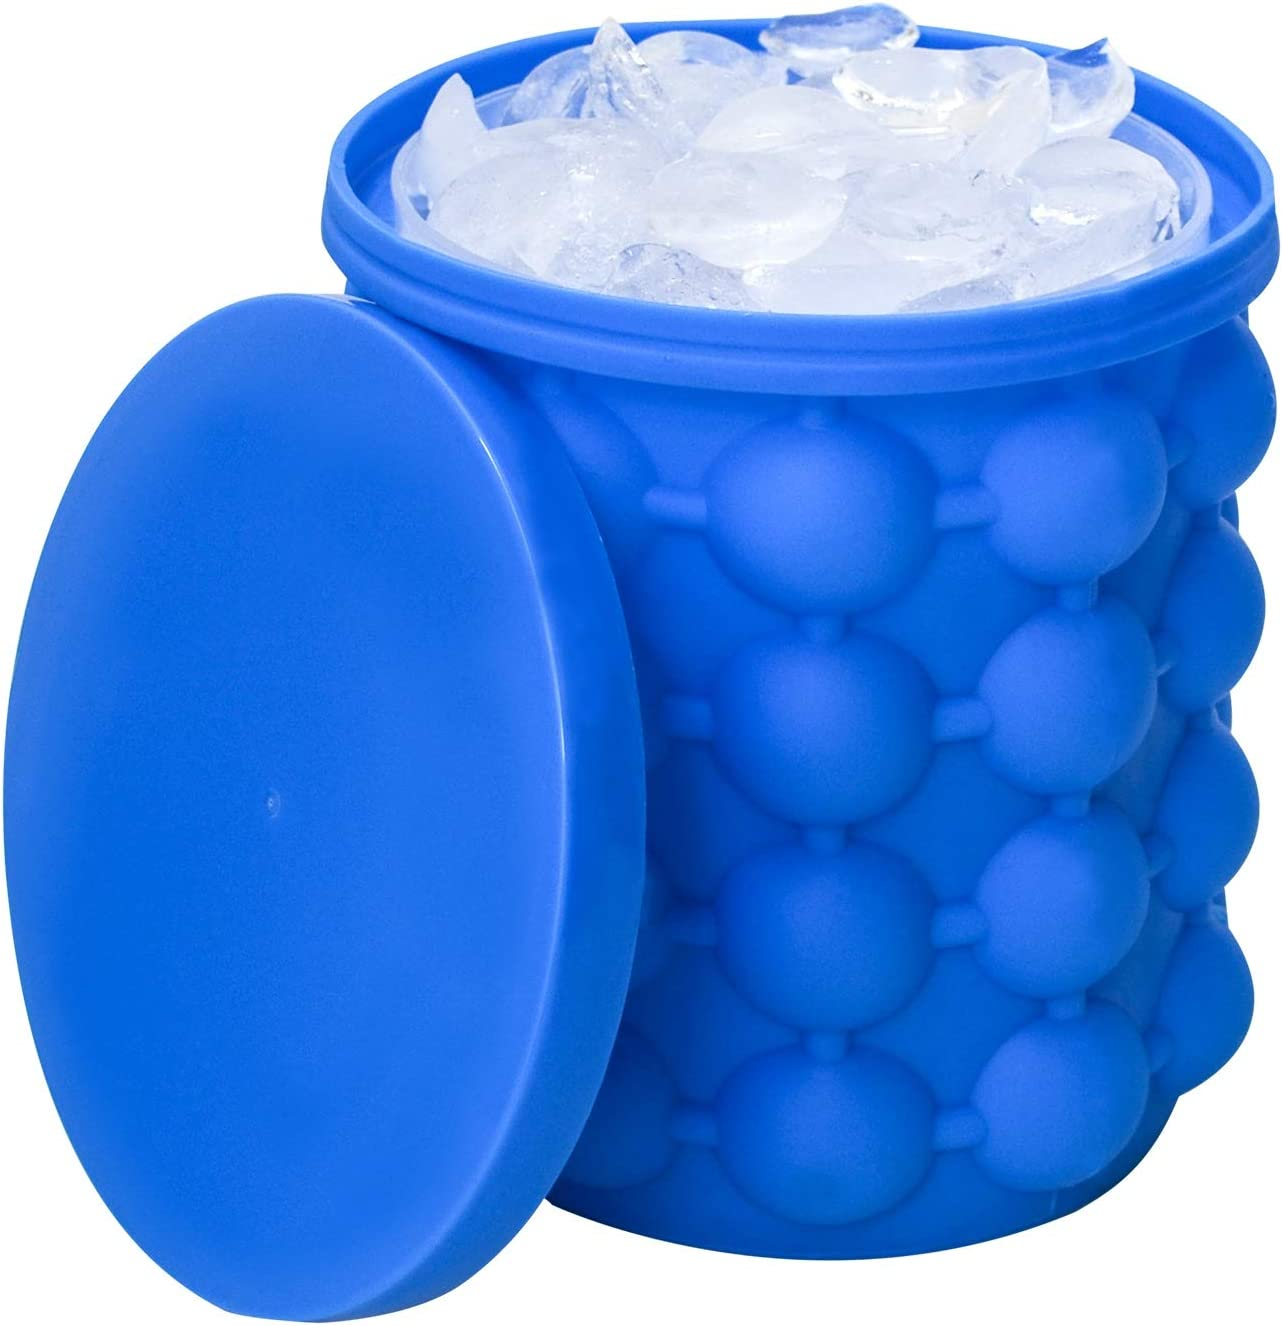 Hand-Mart Ice Cube Mold Ice Trays, Large Silicone Ice Bucket, (2 in 1) Ice Cube Maker, Round,Portable (Dark blue)